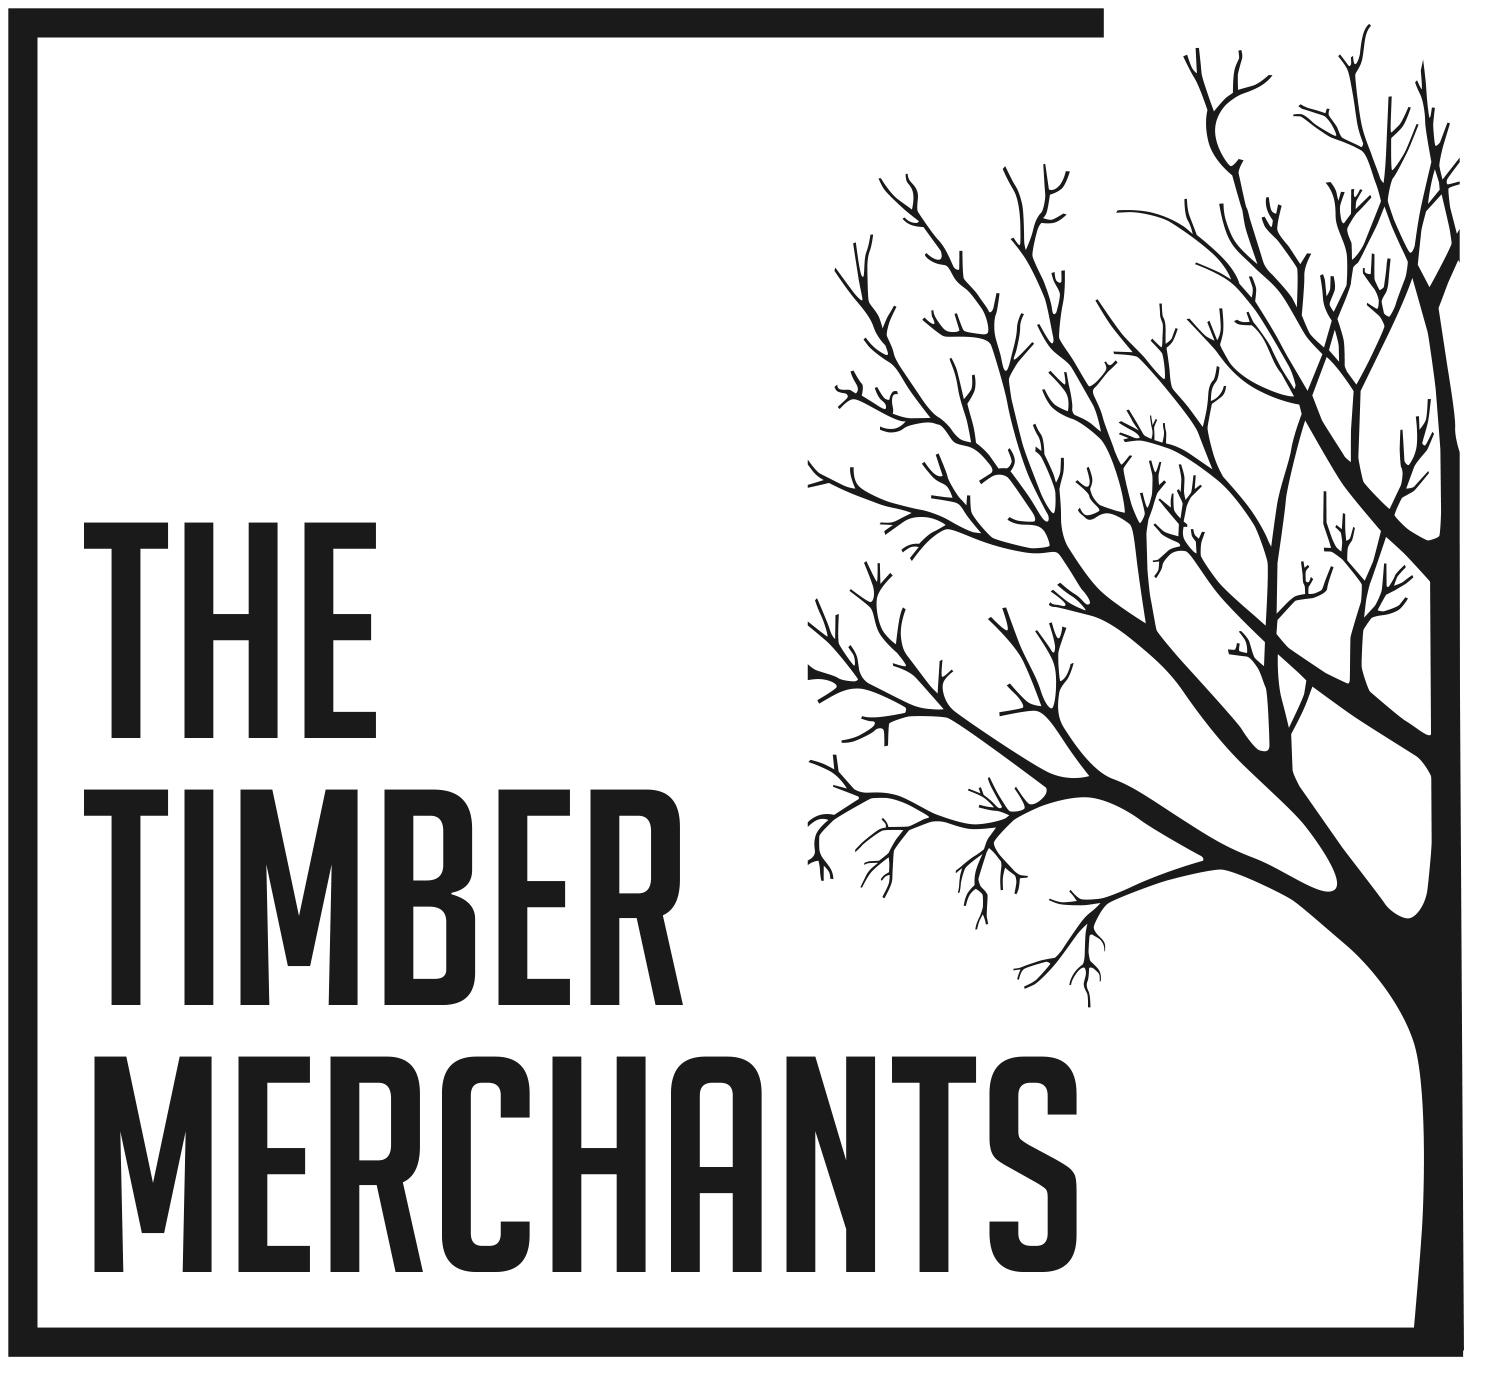 The Timber Merchants